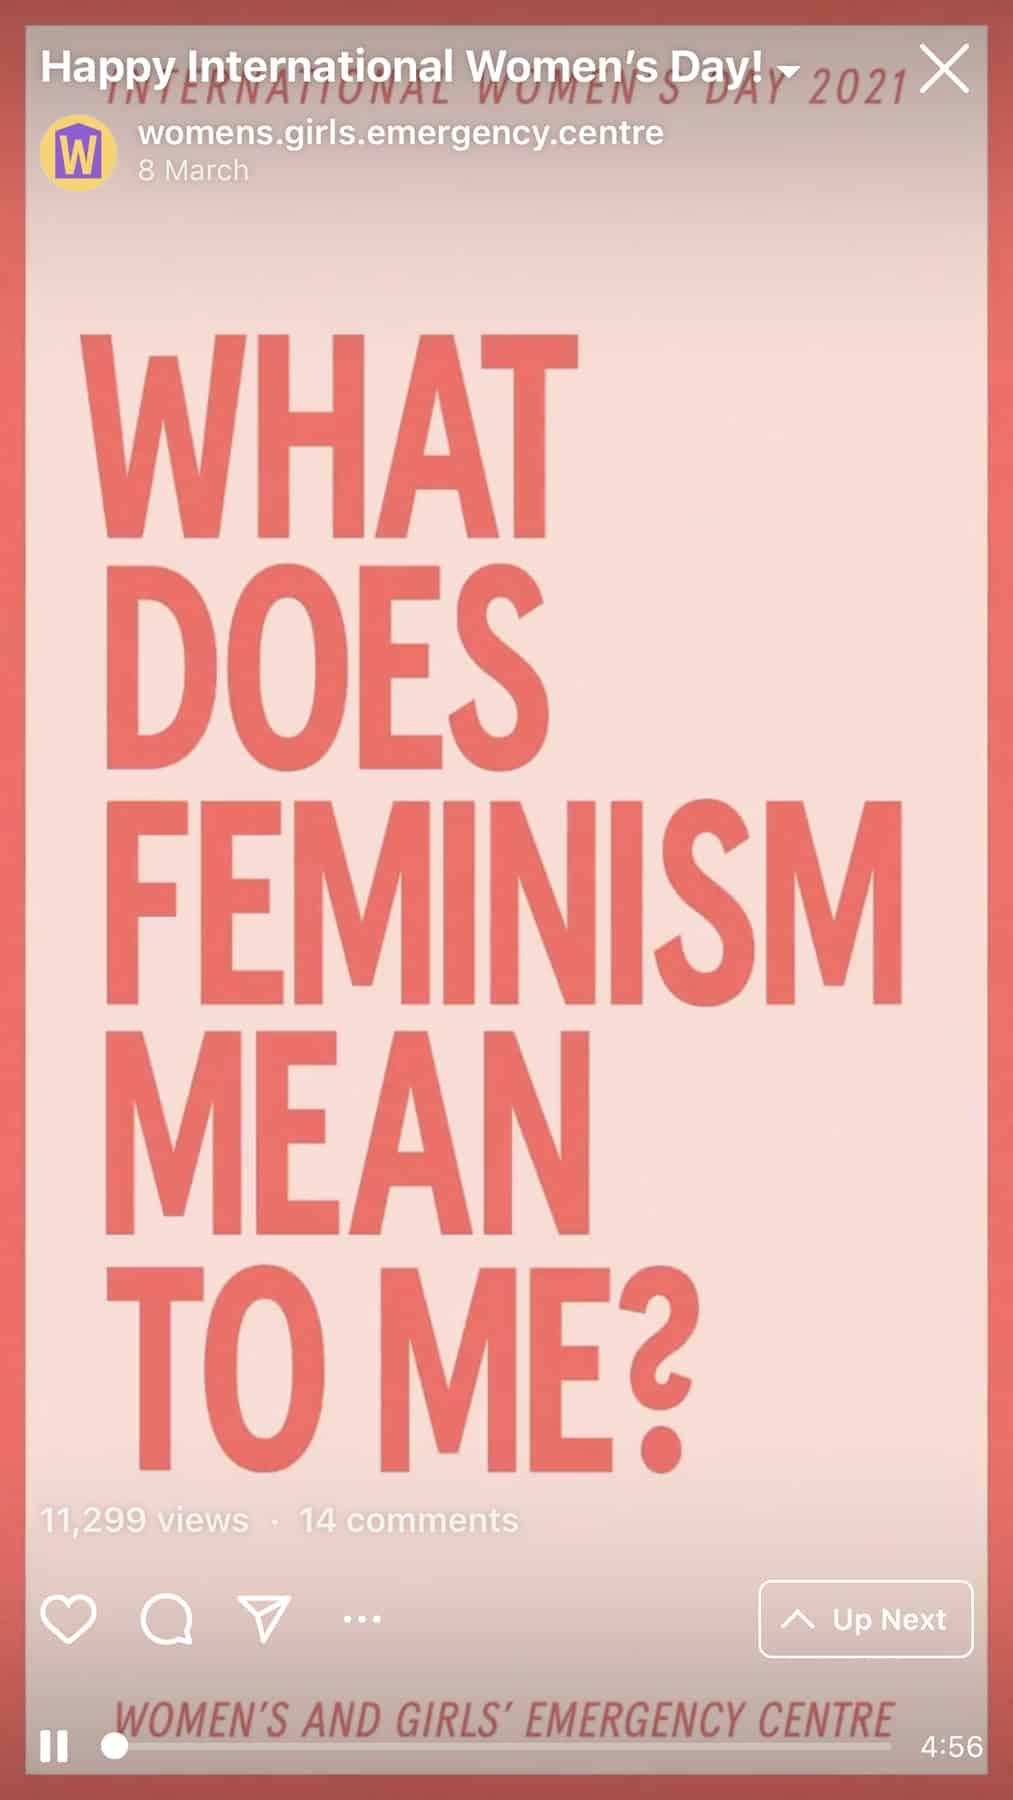 Women and girls emergency centre asking what does feminism mean to me?